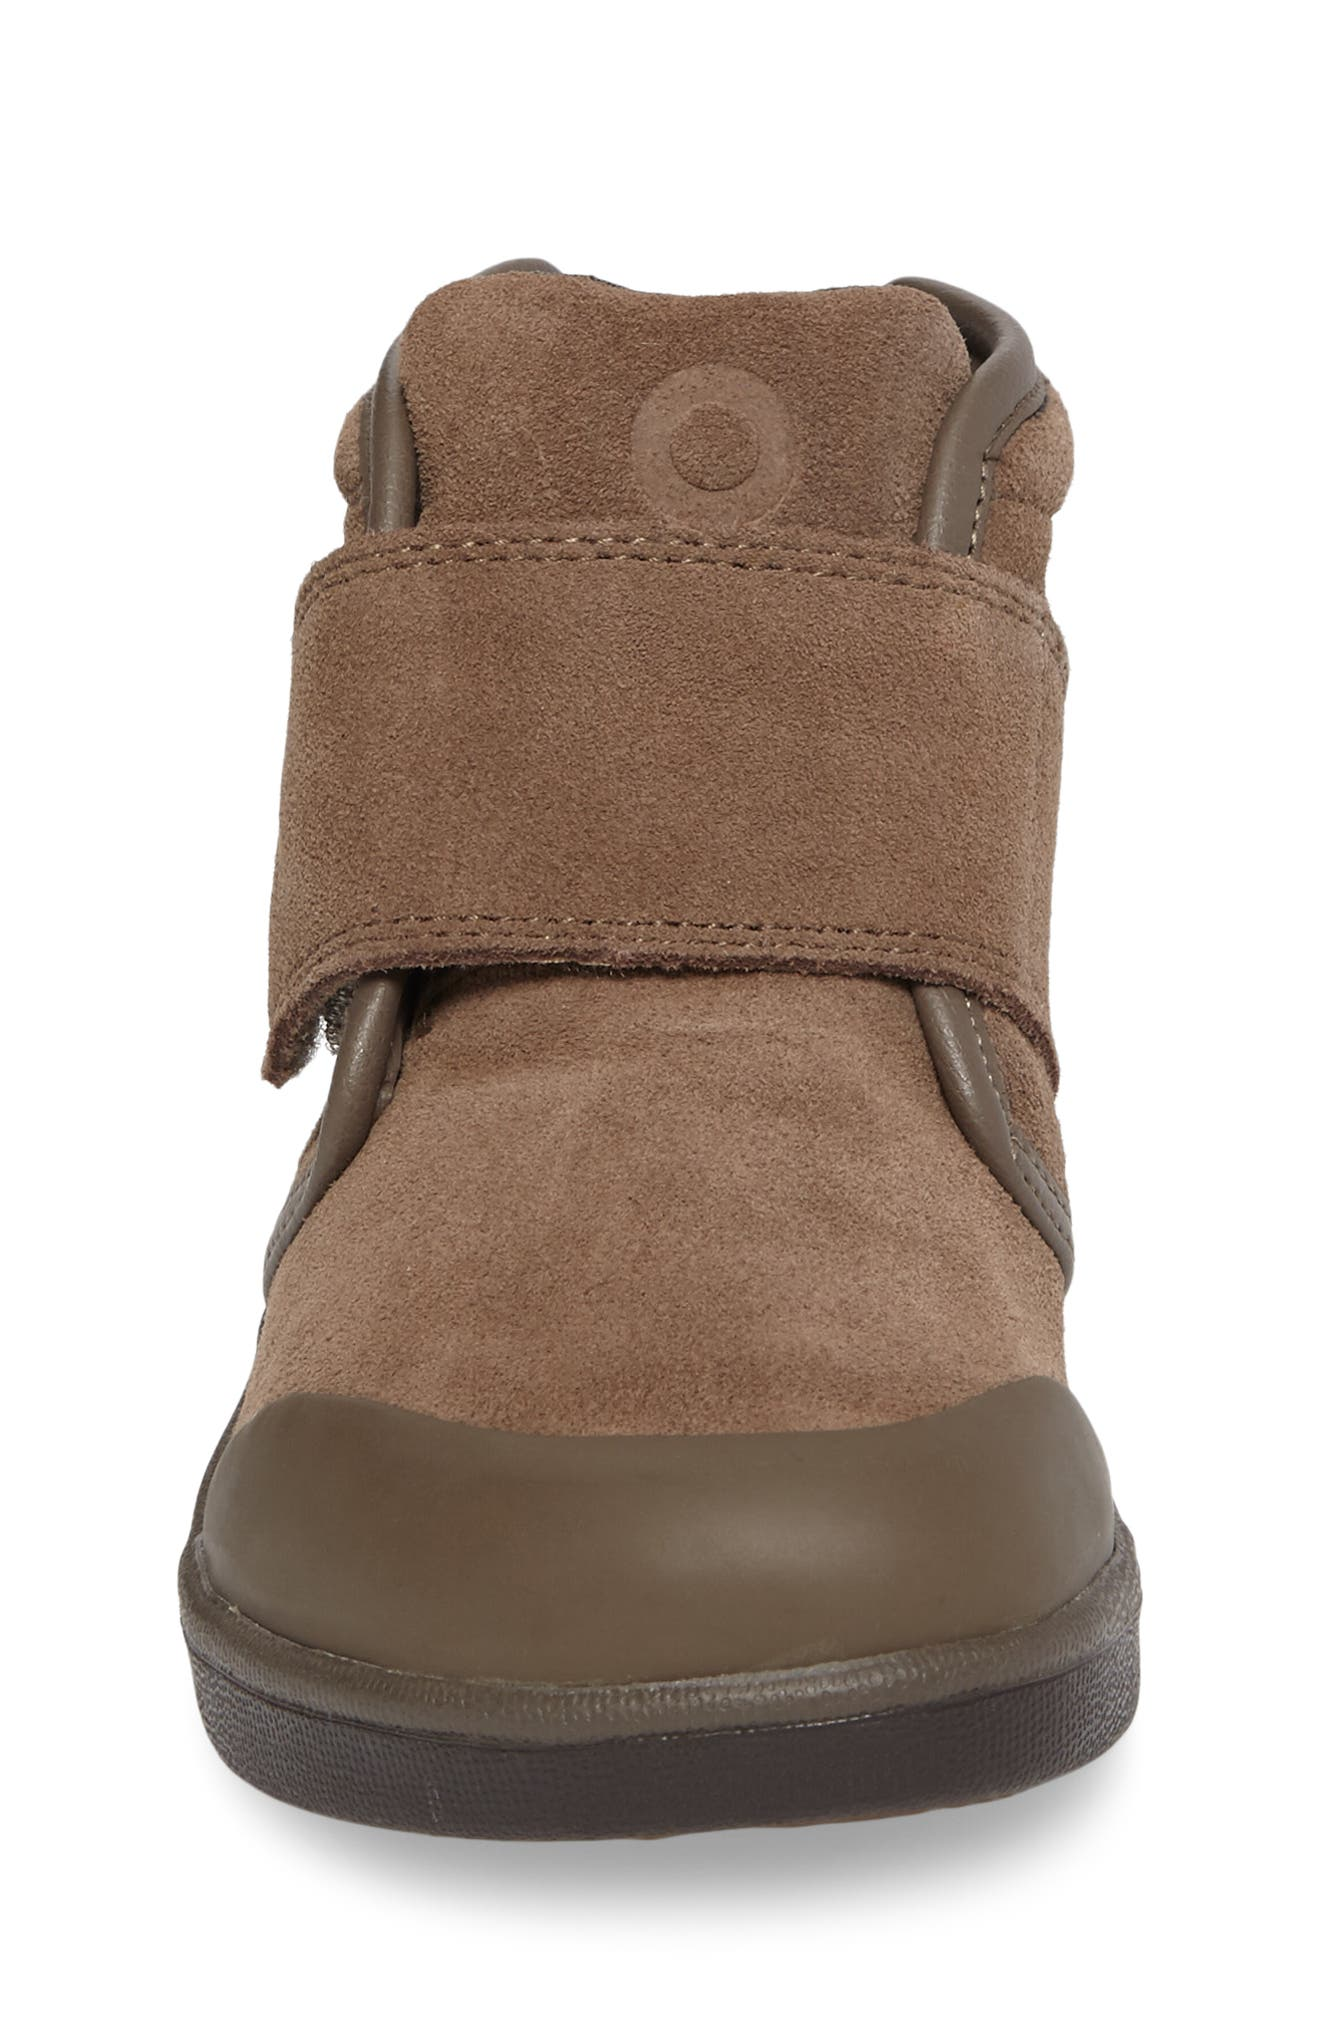 BOGS, 'Sammy' Waterproof Sneaker, Alternate thumbnail 4, color, TAN